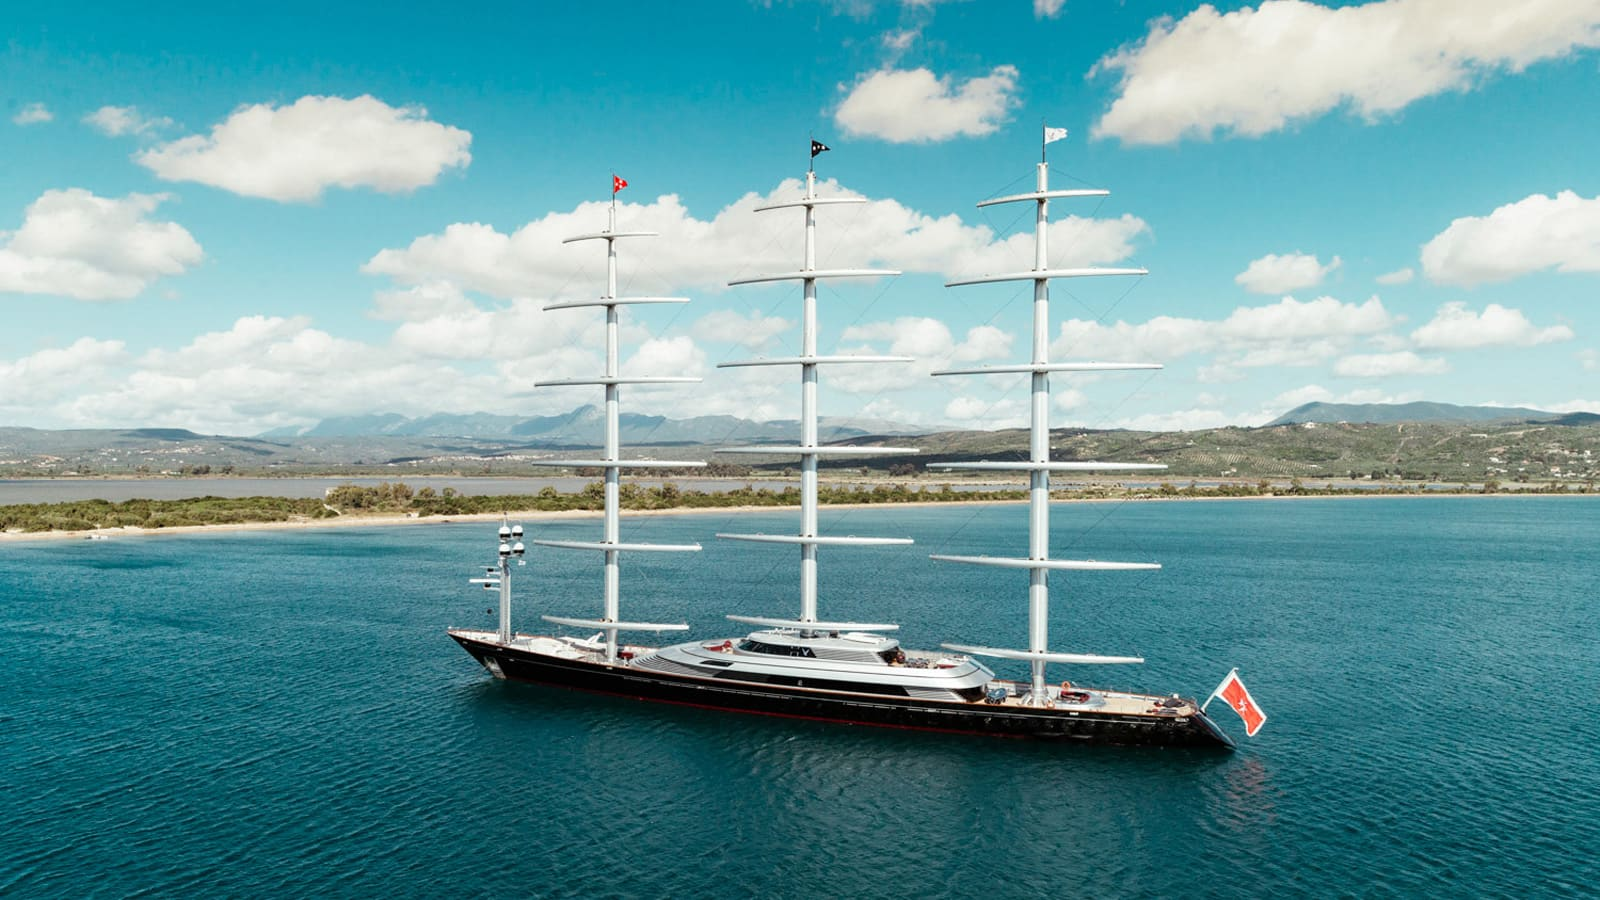 Maltese Falcon Yacht for Charter - IYC